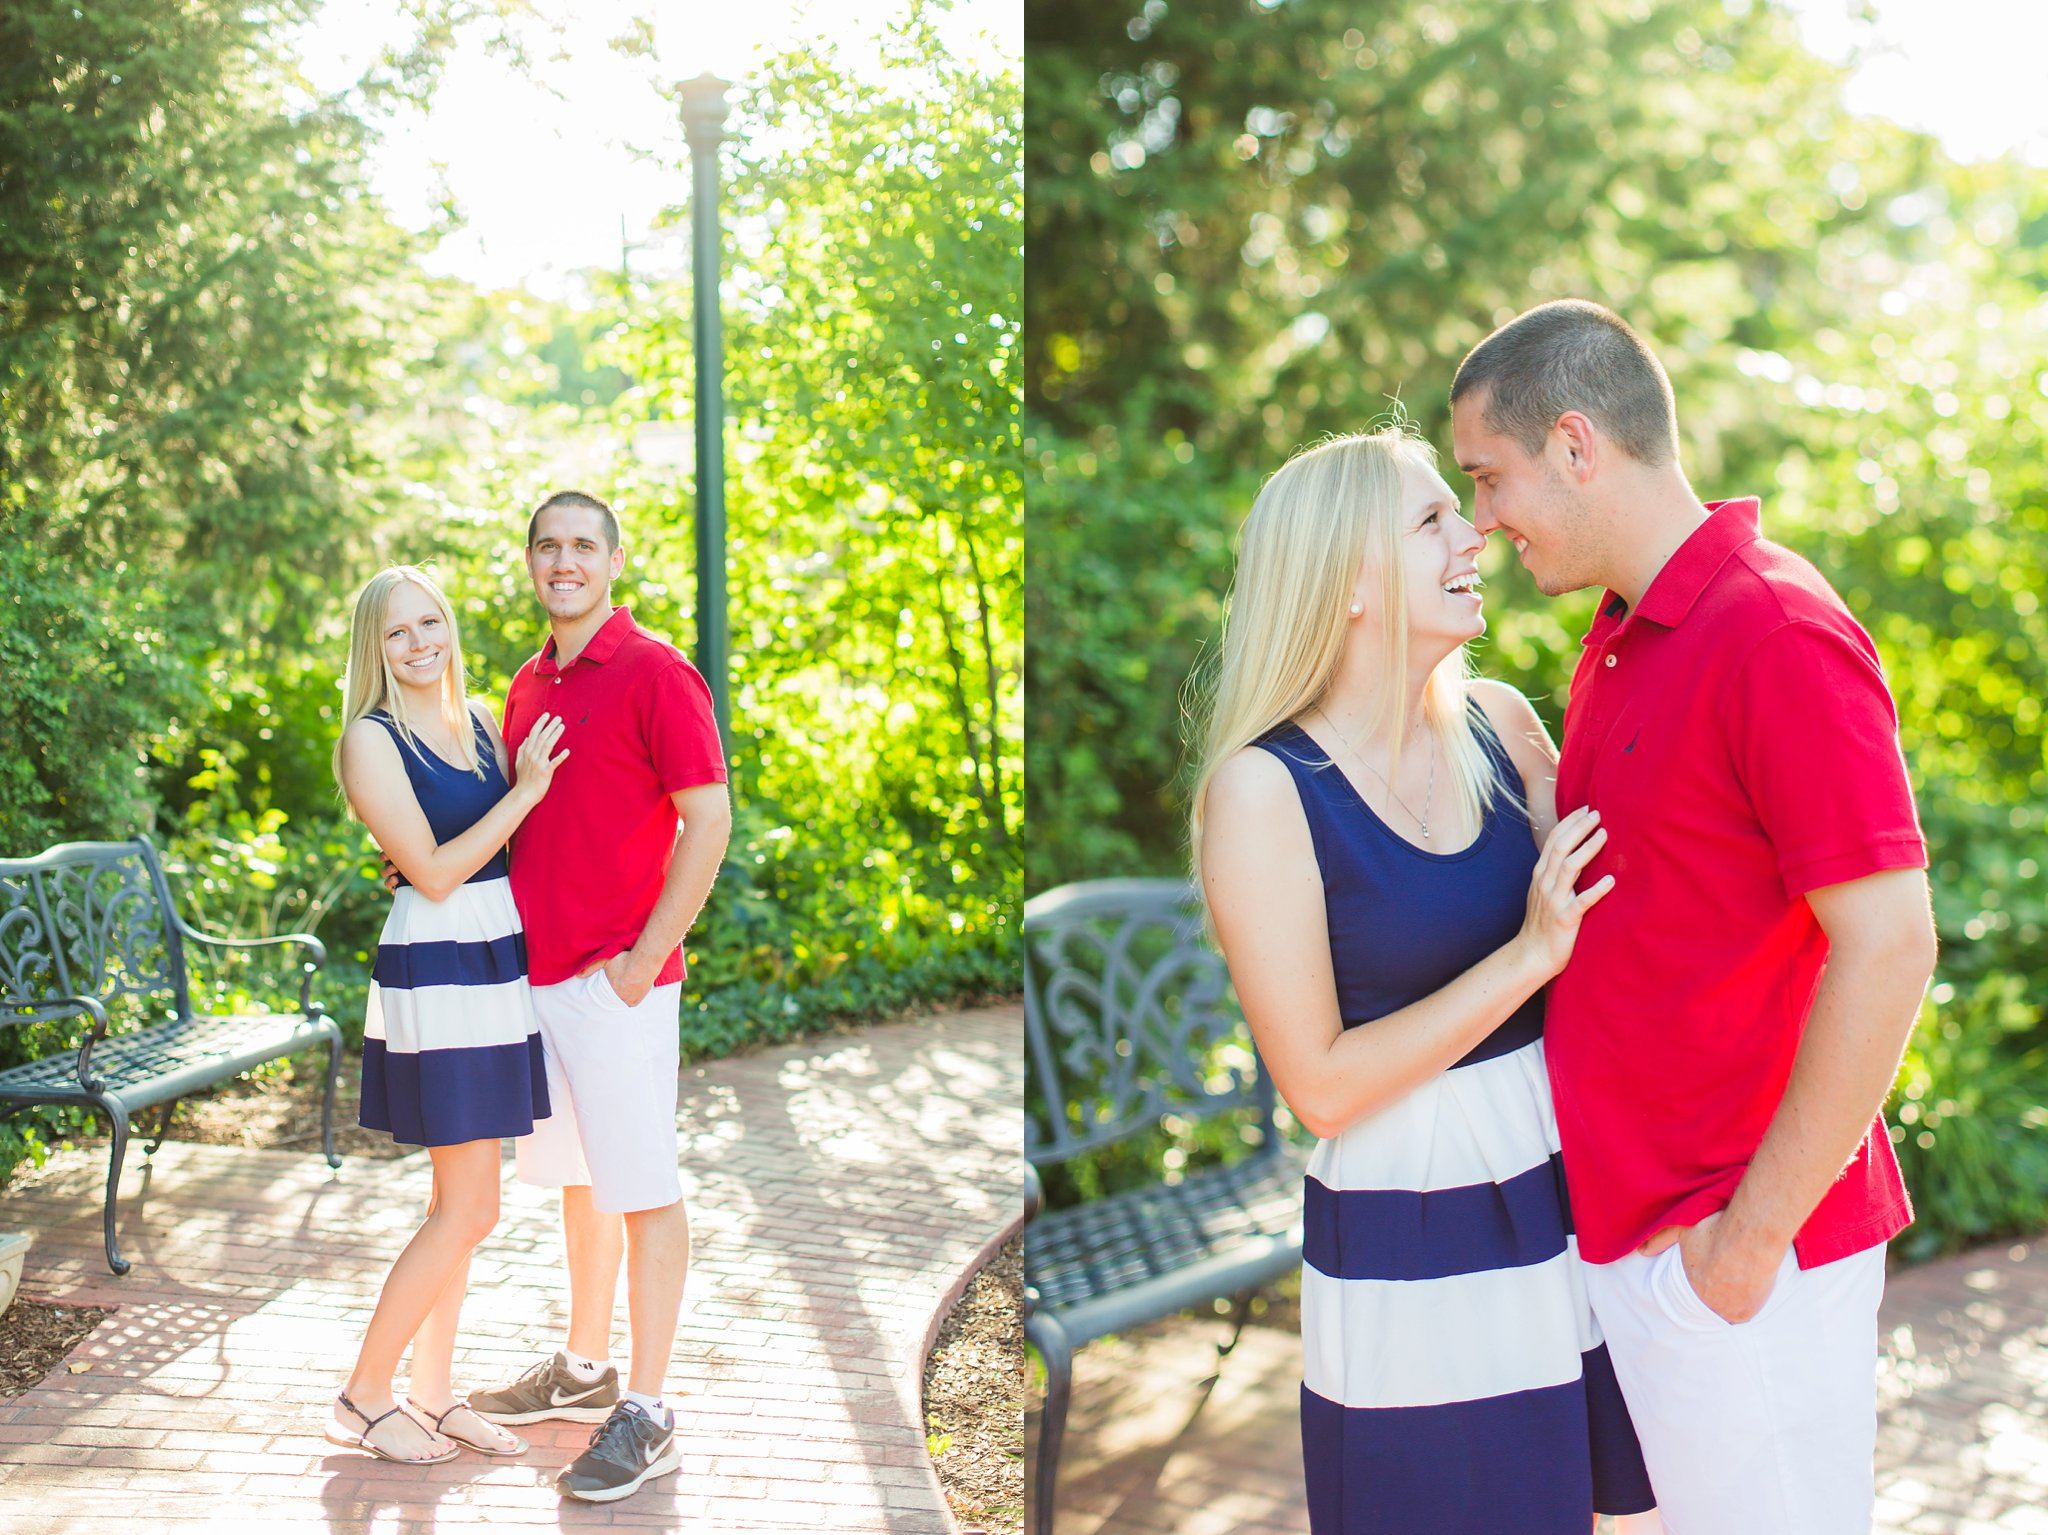 Silver Lake Engagement Photos Michigan Wedding Photographer Megan Kelsey Photography-9300.jpg